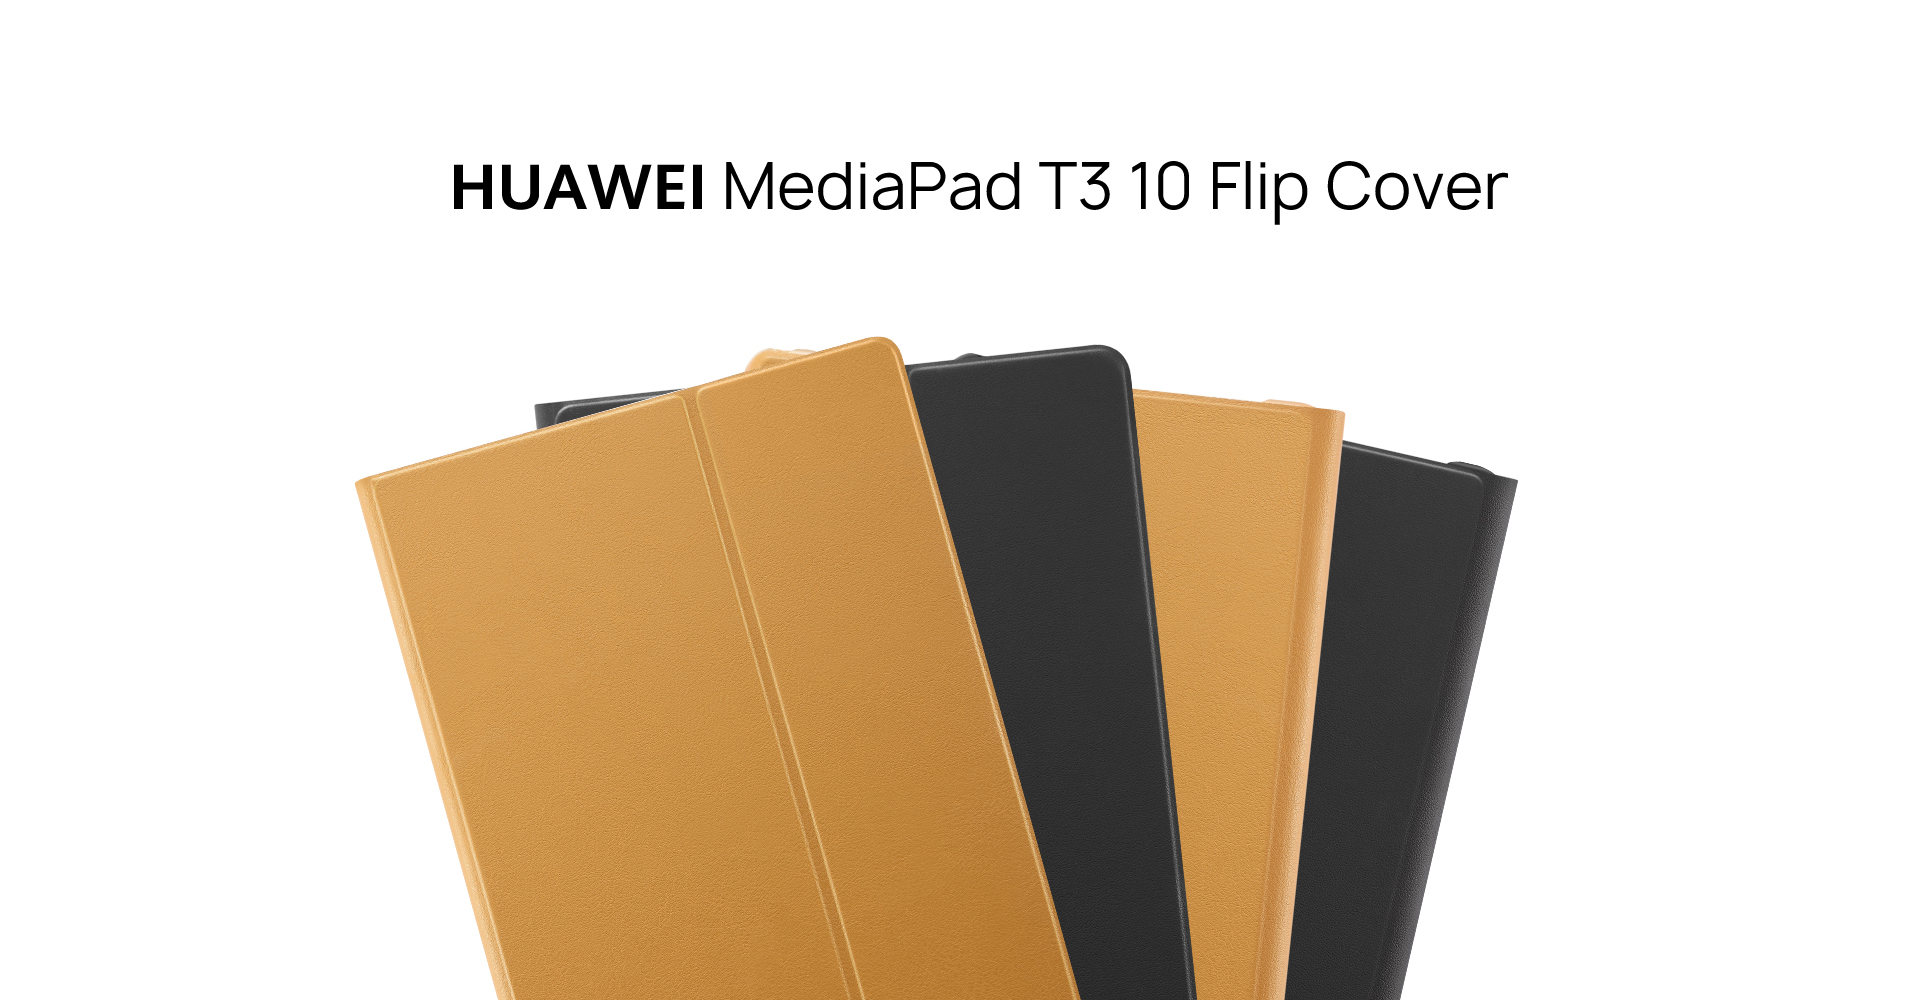 detailed look 70333 76f45 HUAWEI MediaPad T3 10 Flip Cover | HUAWEI Global